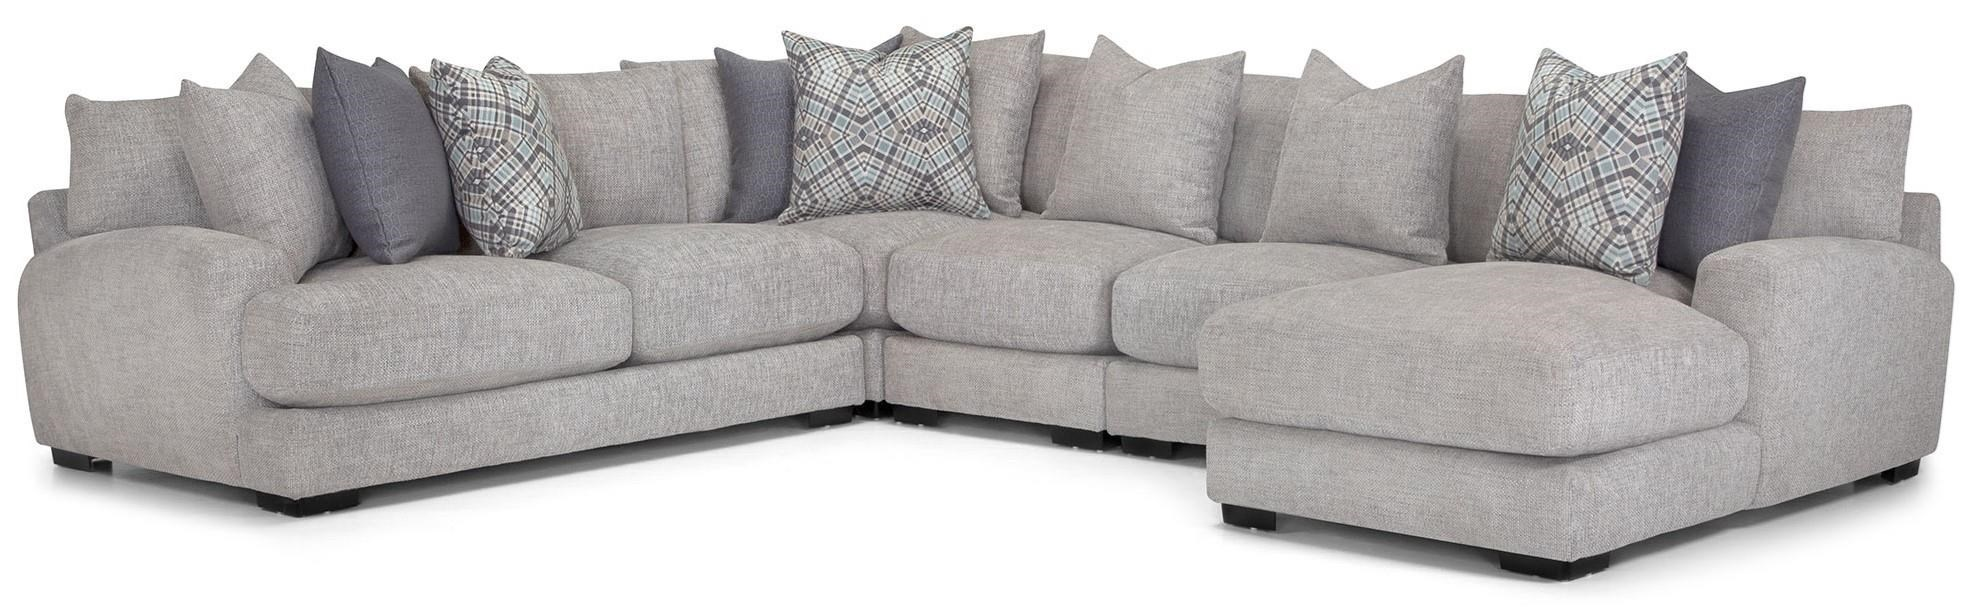 903 5 pc sectional grey